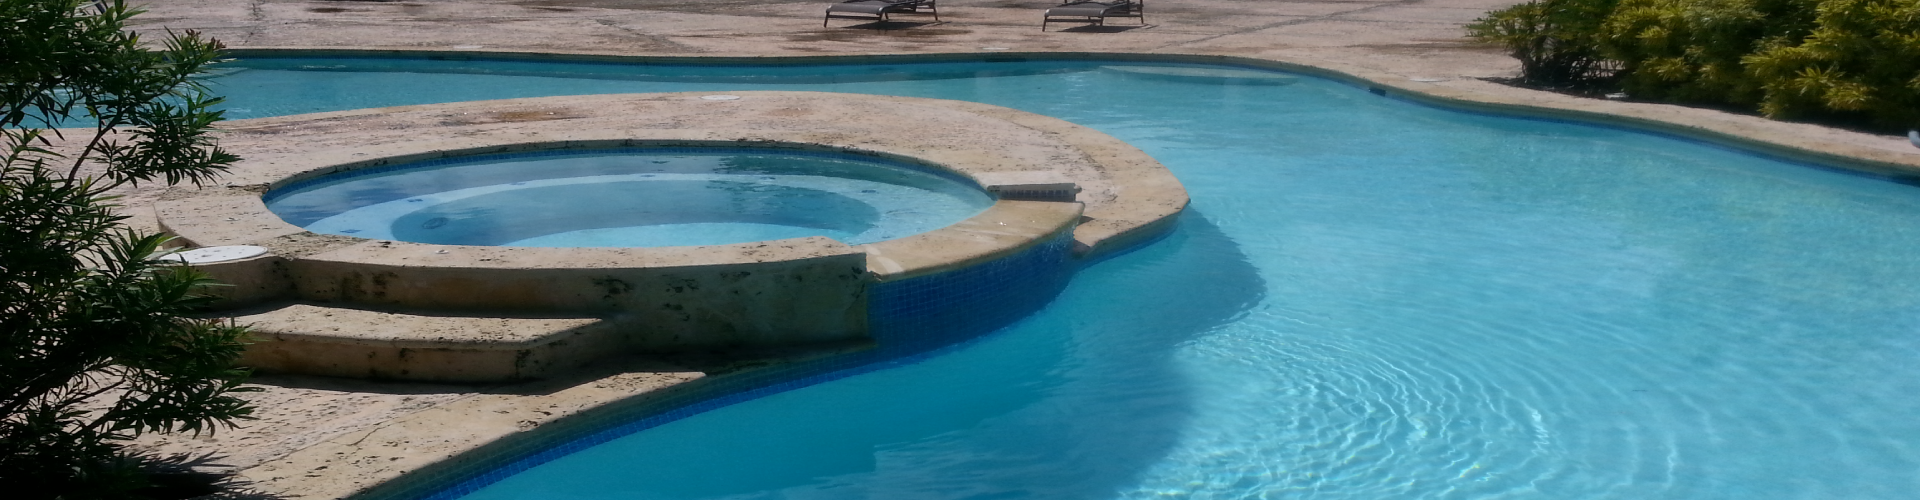 swimming pools rh aicspr com Small Pools and Spas Tropical Pools and Spas